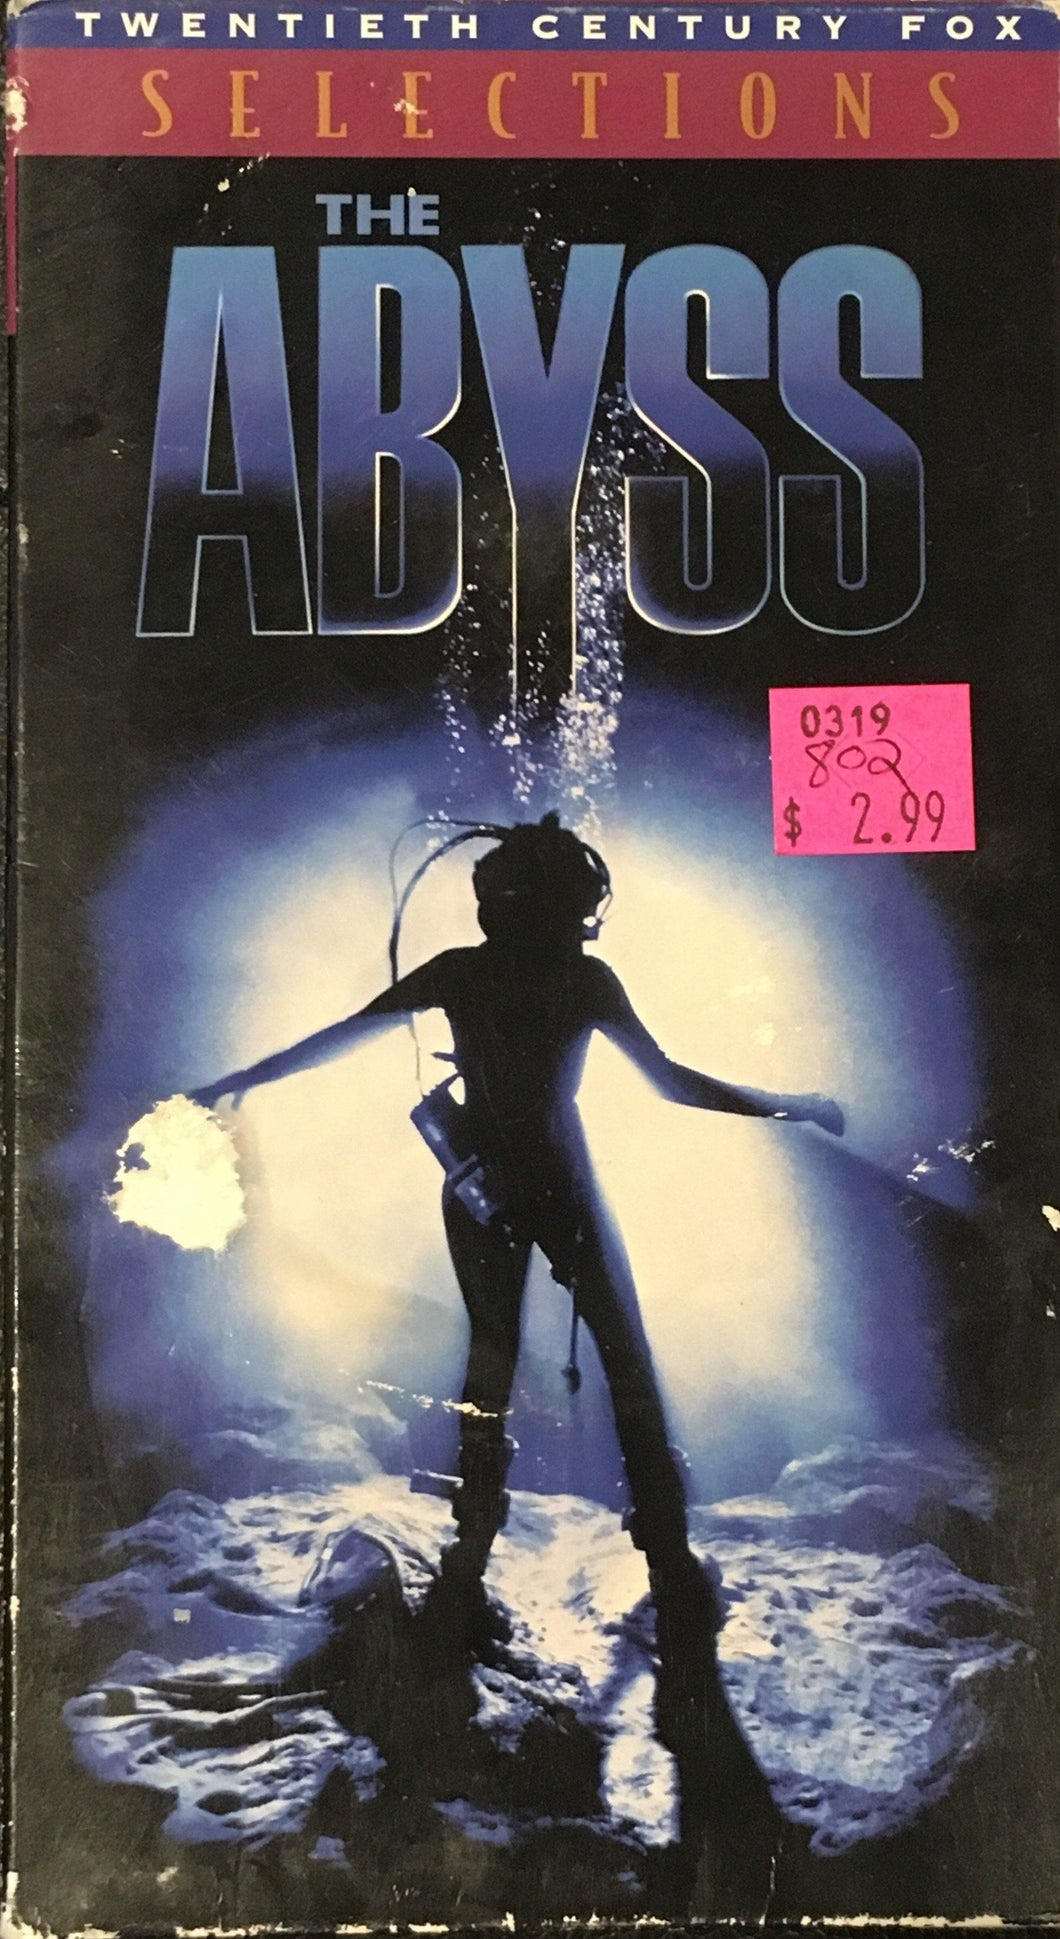 Abyss (The Abyss) (directed by James Cameron) VHS